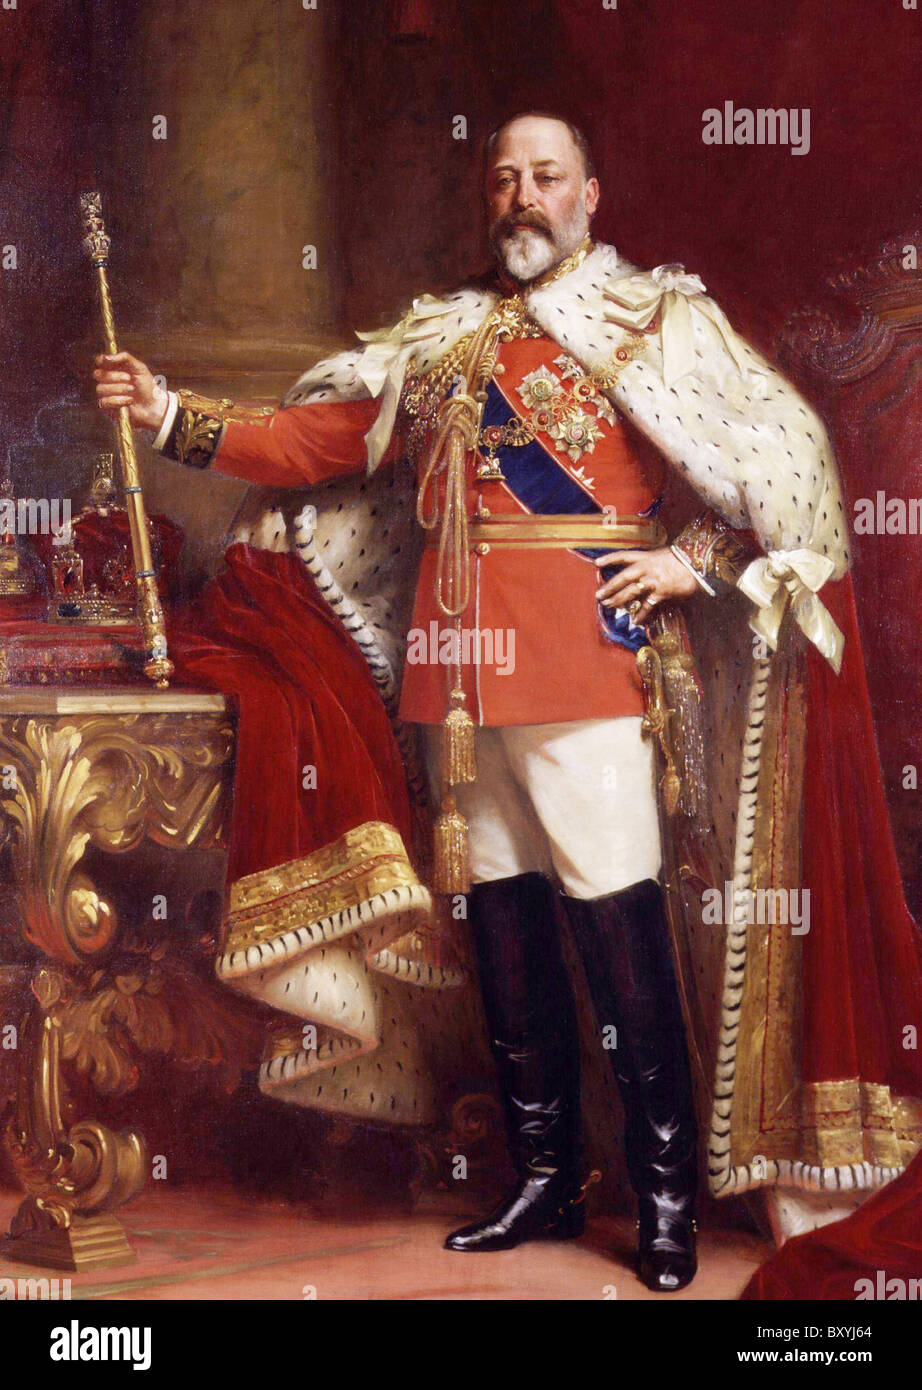 KING EDWARD VII (1841-1910) in his 1902 Coronation robes painted by  Samuel Fildes holding the Royal Sceptre - Stock Image